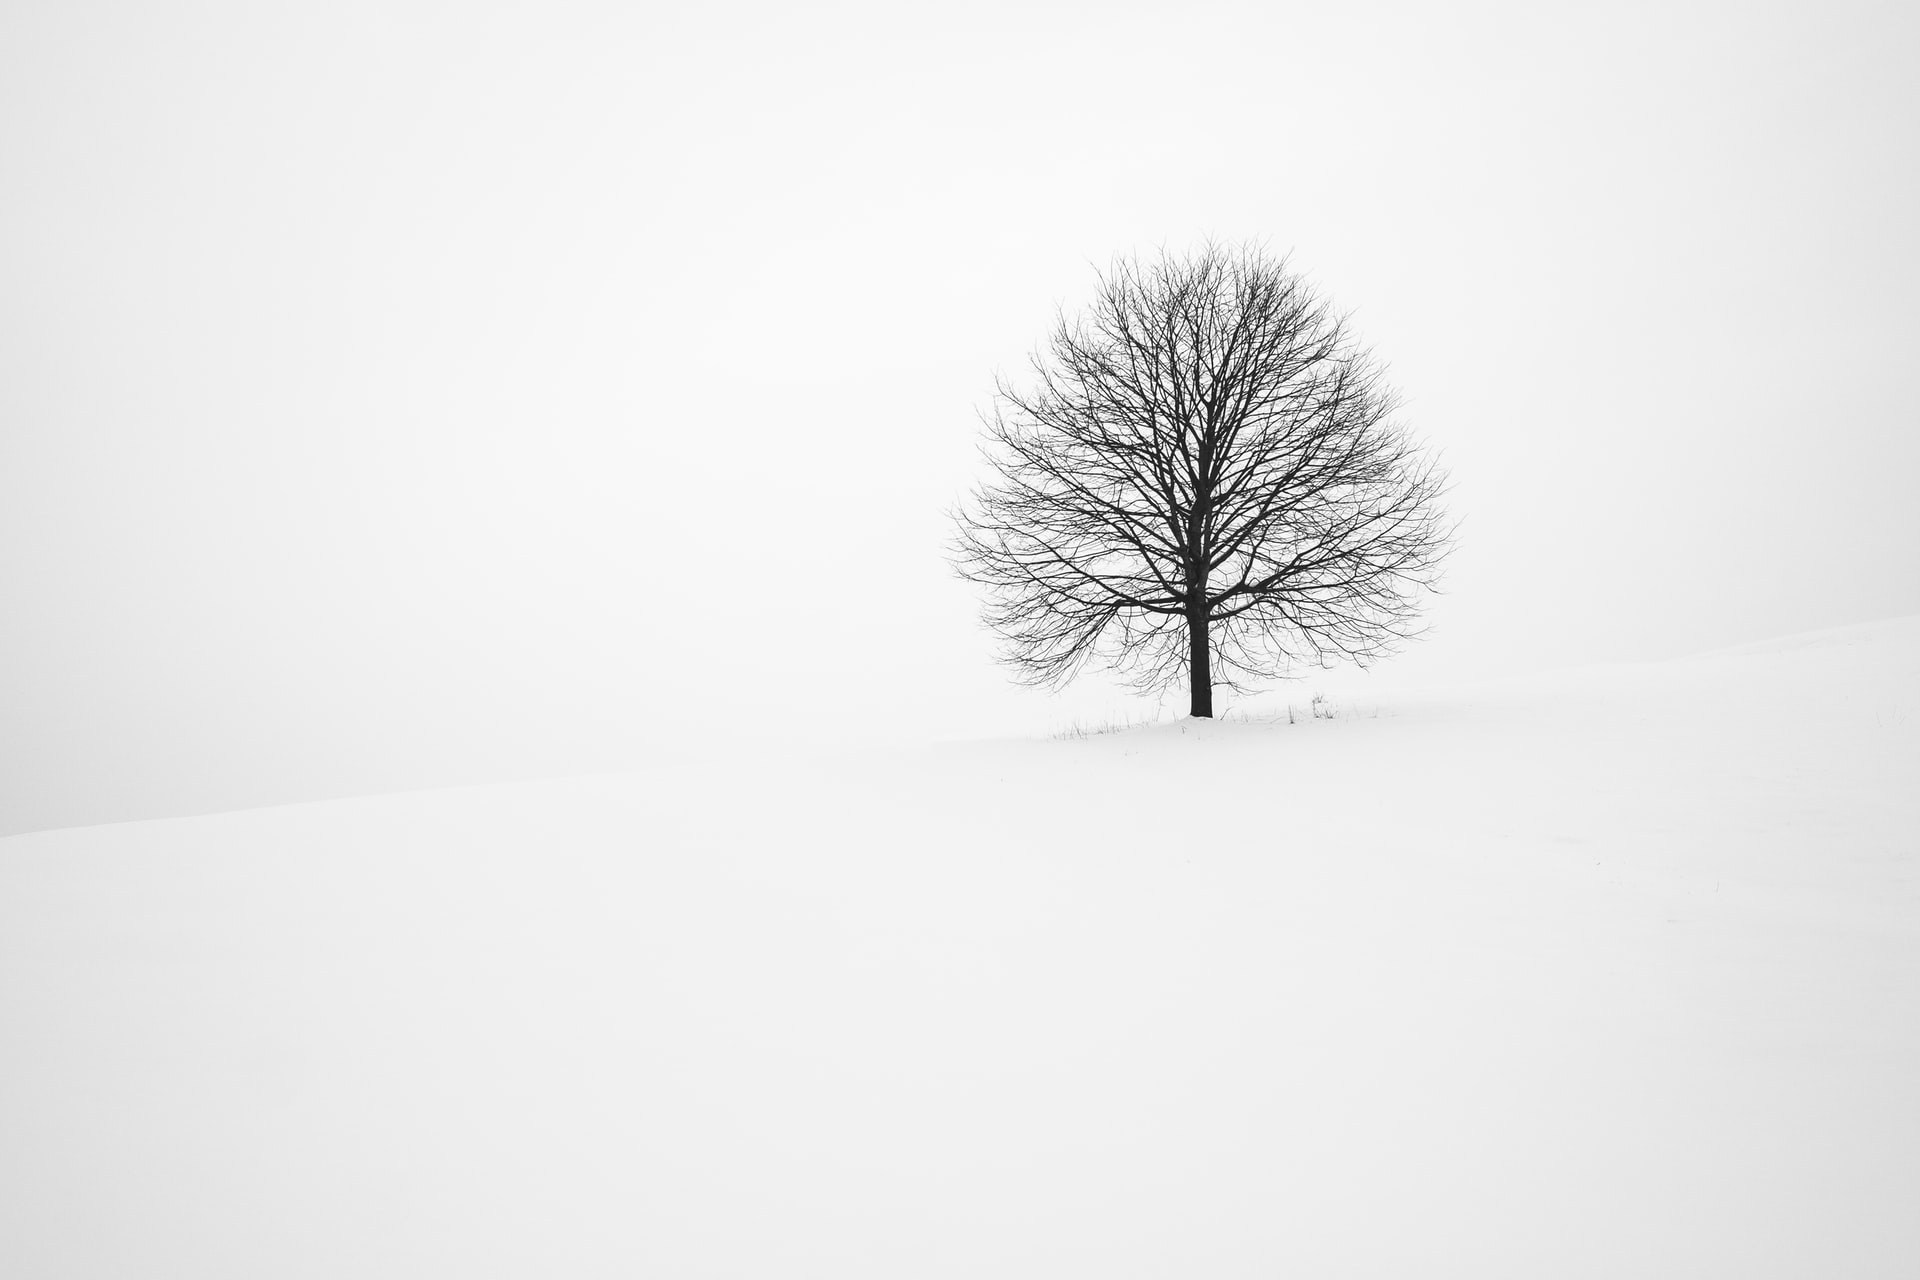 tree on a snow covered hill